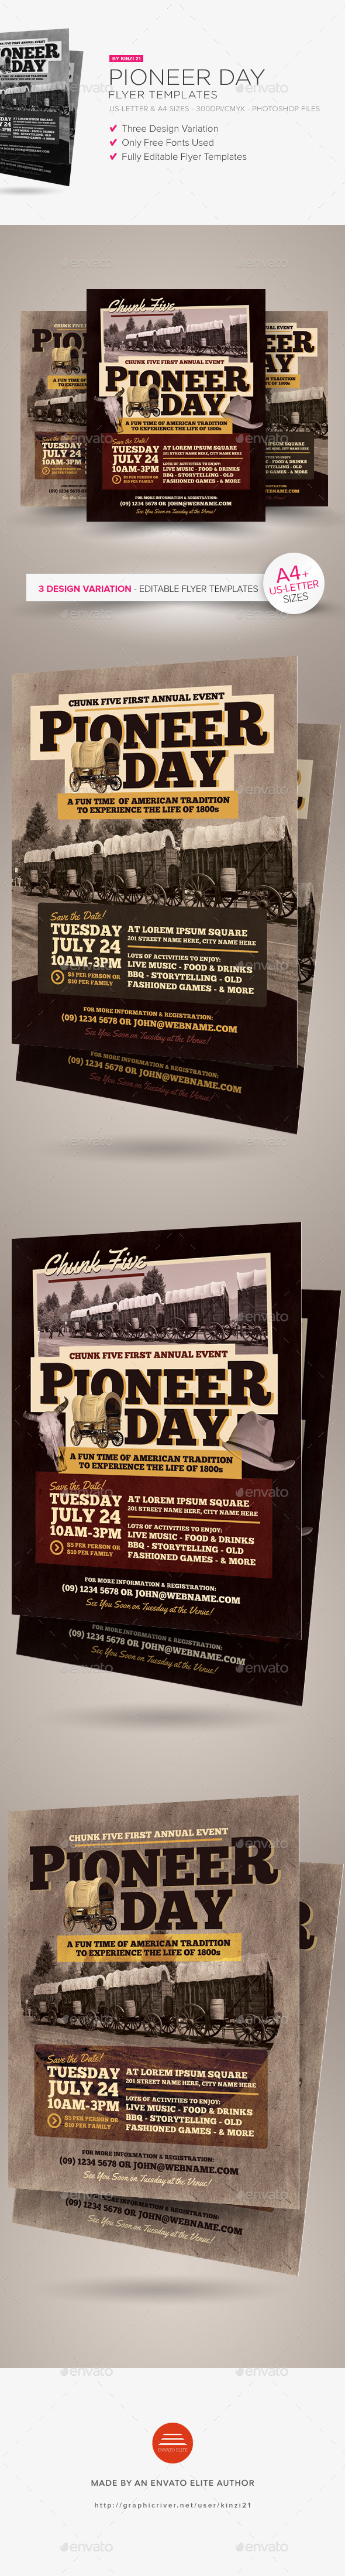 Pioneer Day Flyer Templates - Holidays Events